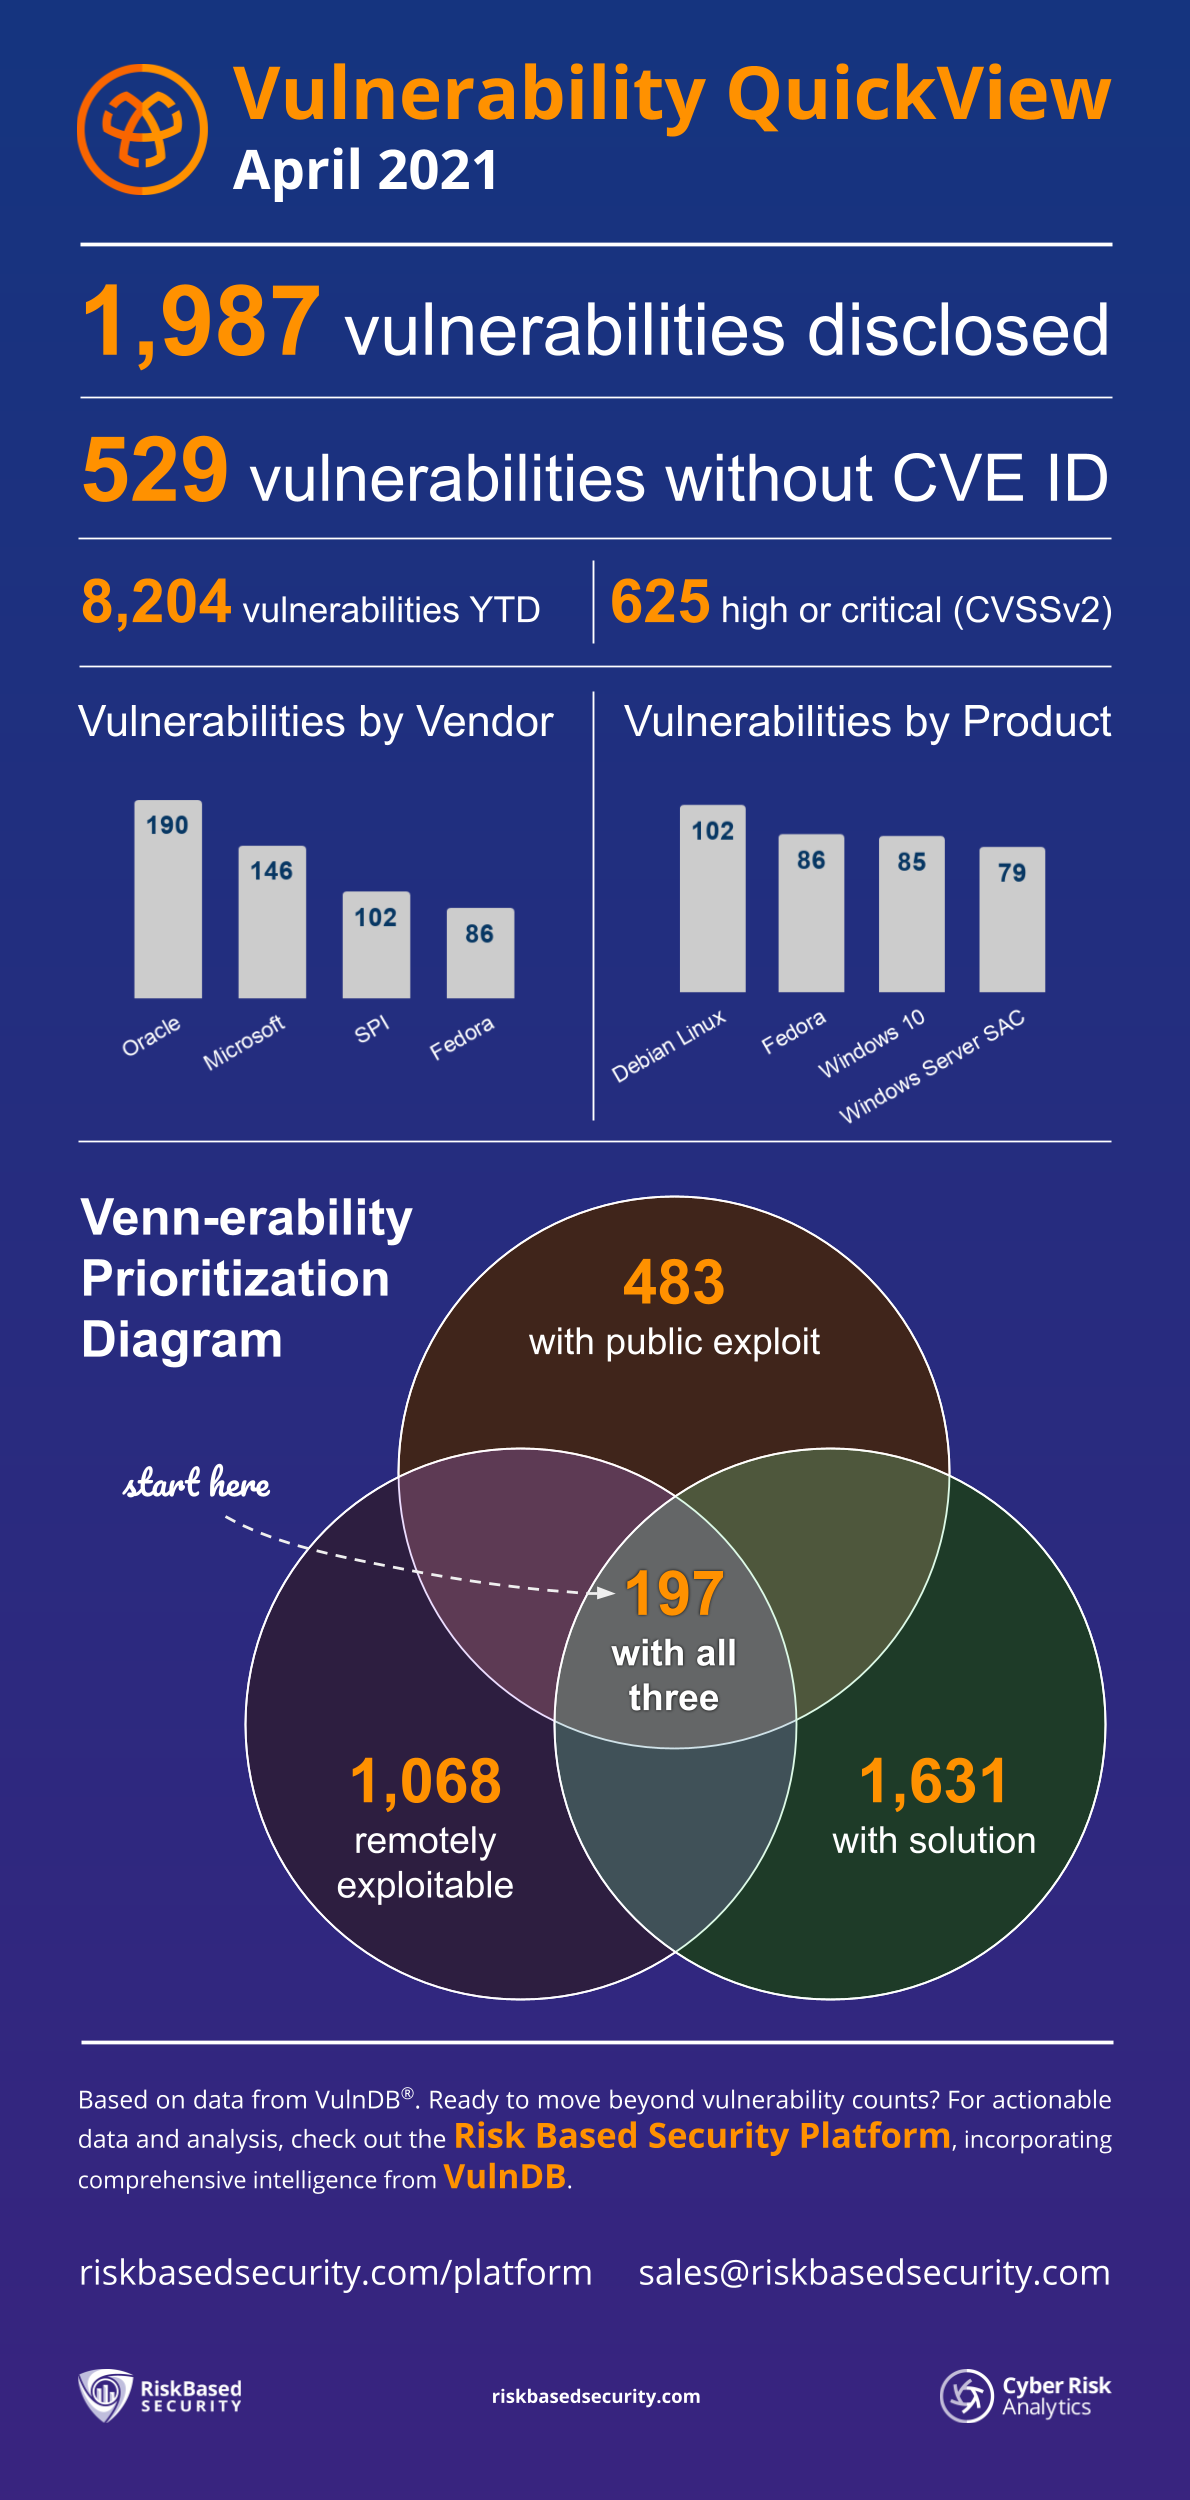 Vulnerability QuickView infographic - April 2021